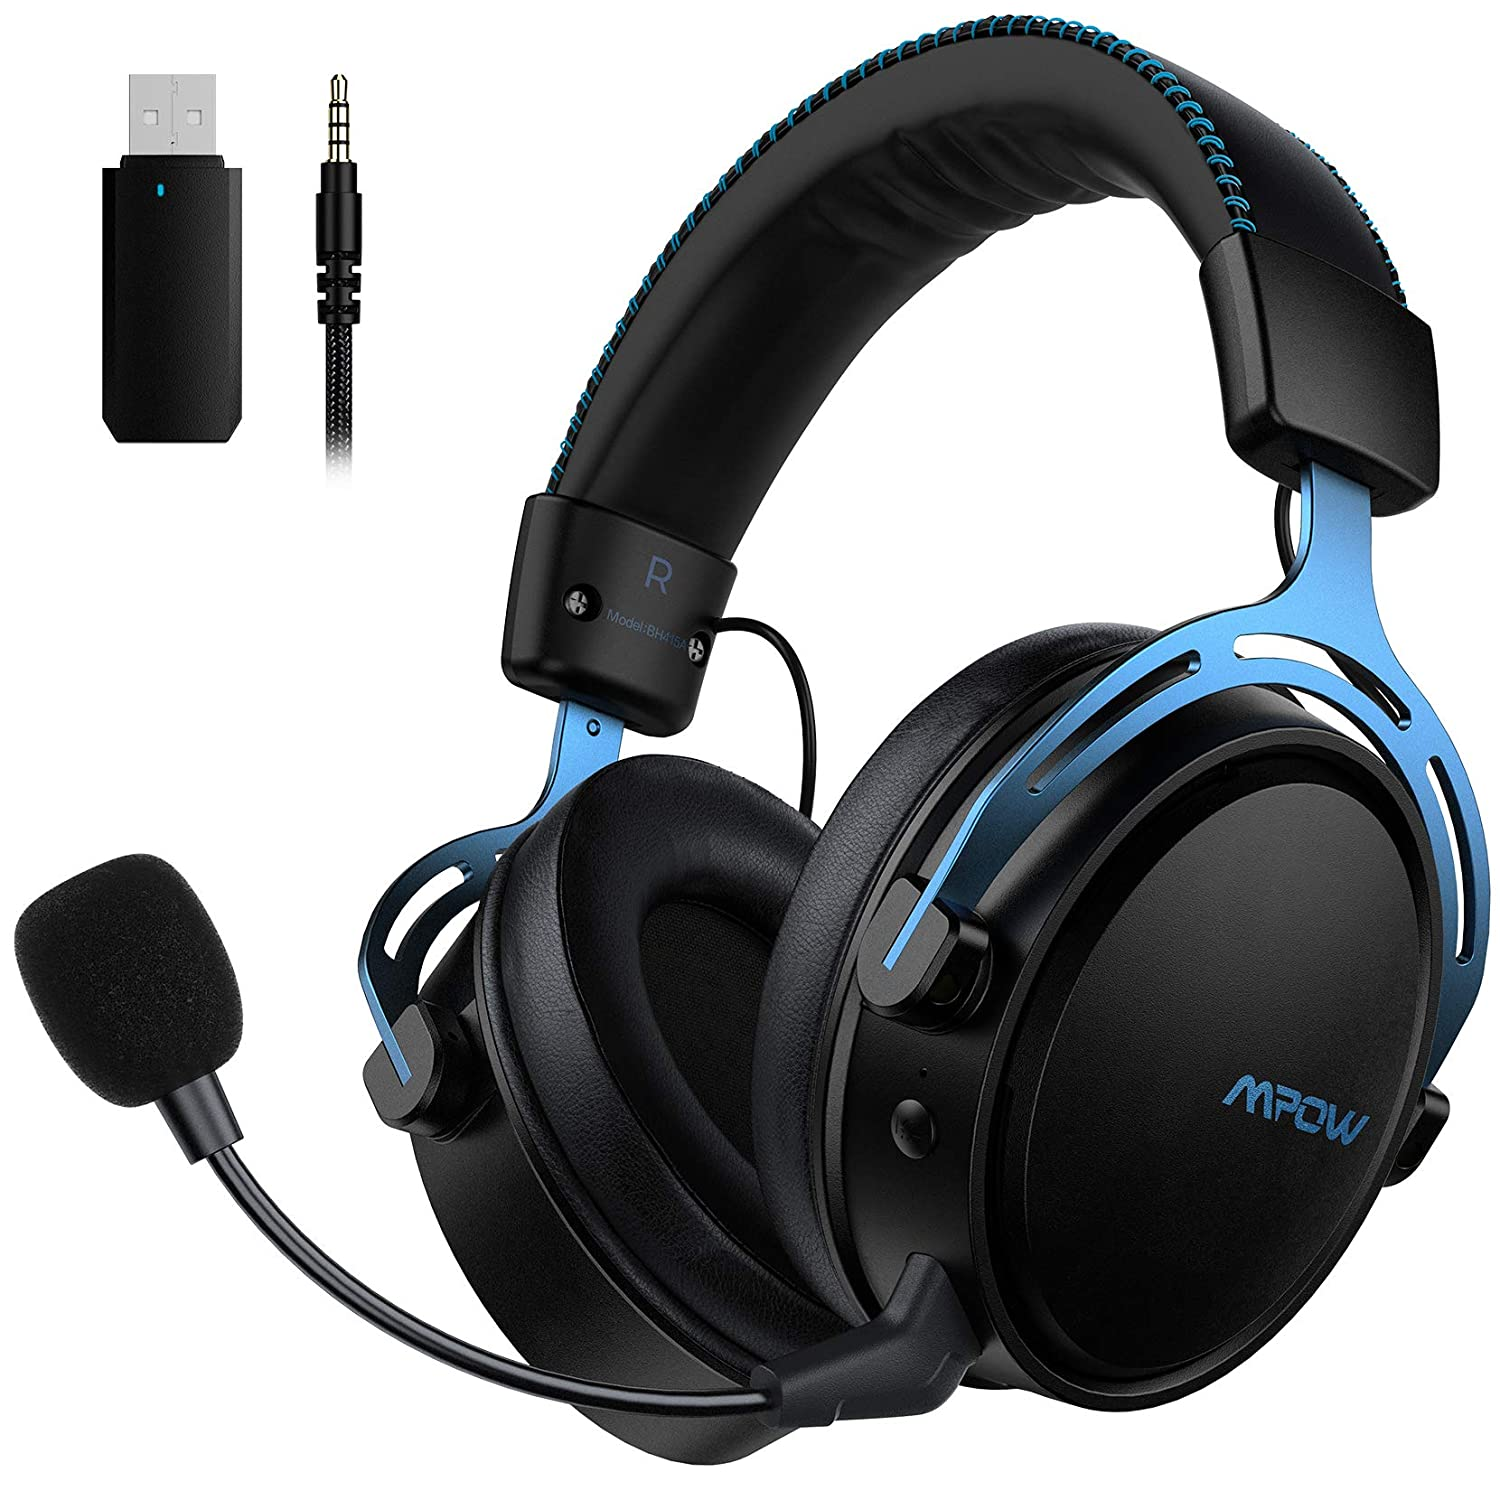 Amazon Com Mpow Air I Wireless Gaming Headset Ps4 Headset With Double Chamber Drivers Detachable Noise Cancelling Microphone Memory Foam Gaming Headphones Computers Accessories - View Wireless Gaming Headset Ps4 Test Pictures